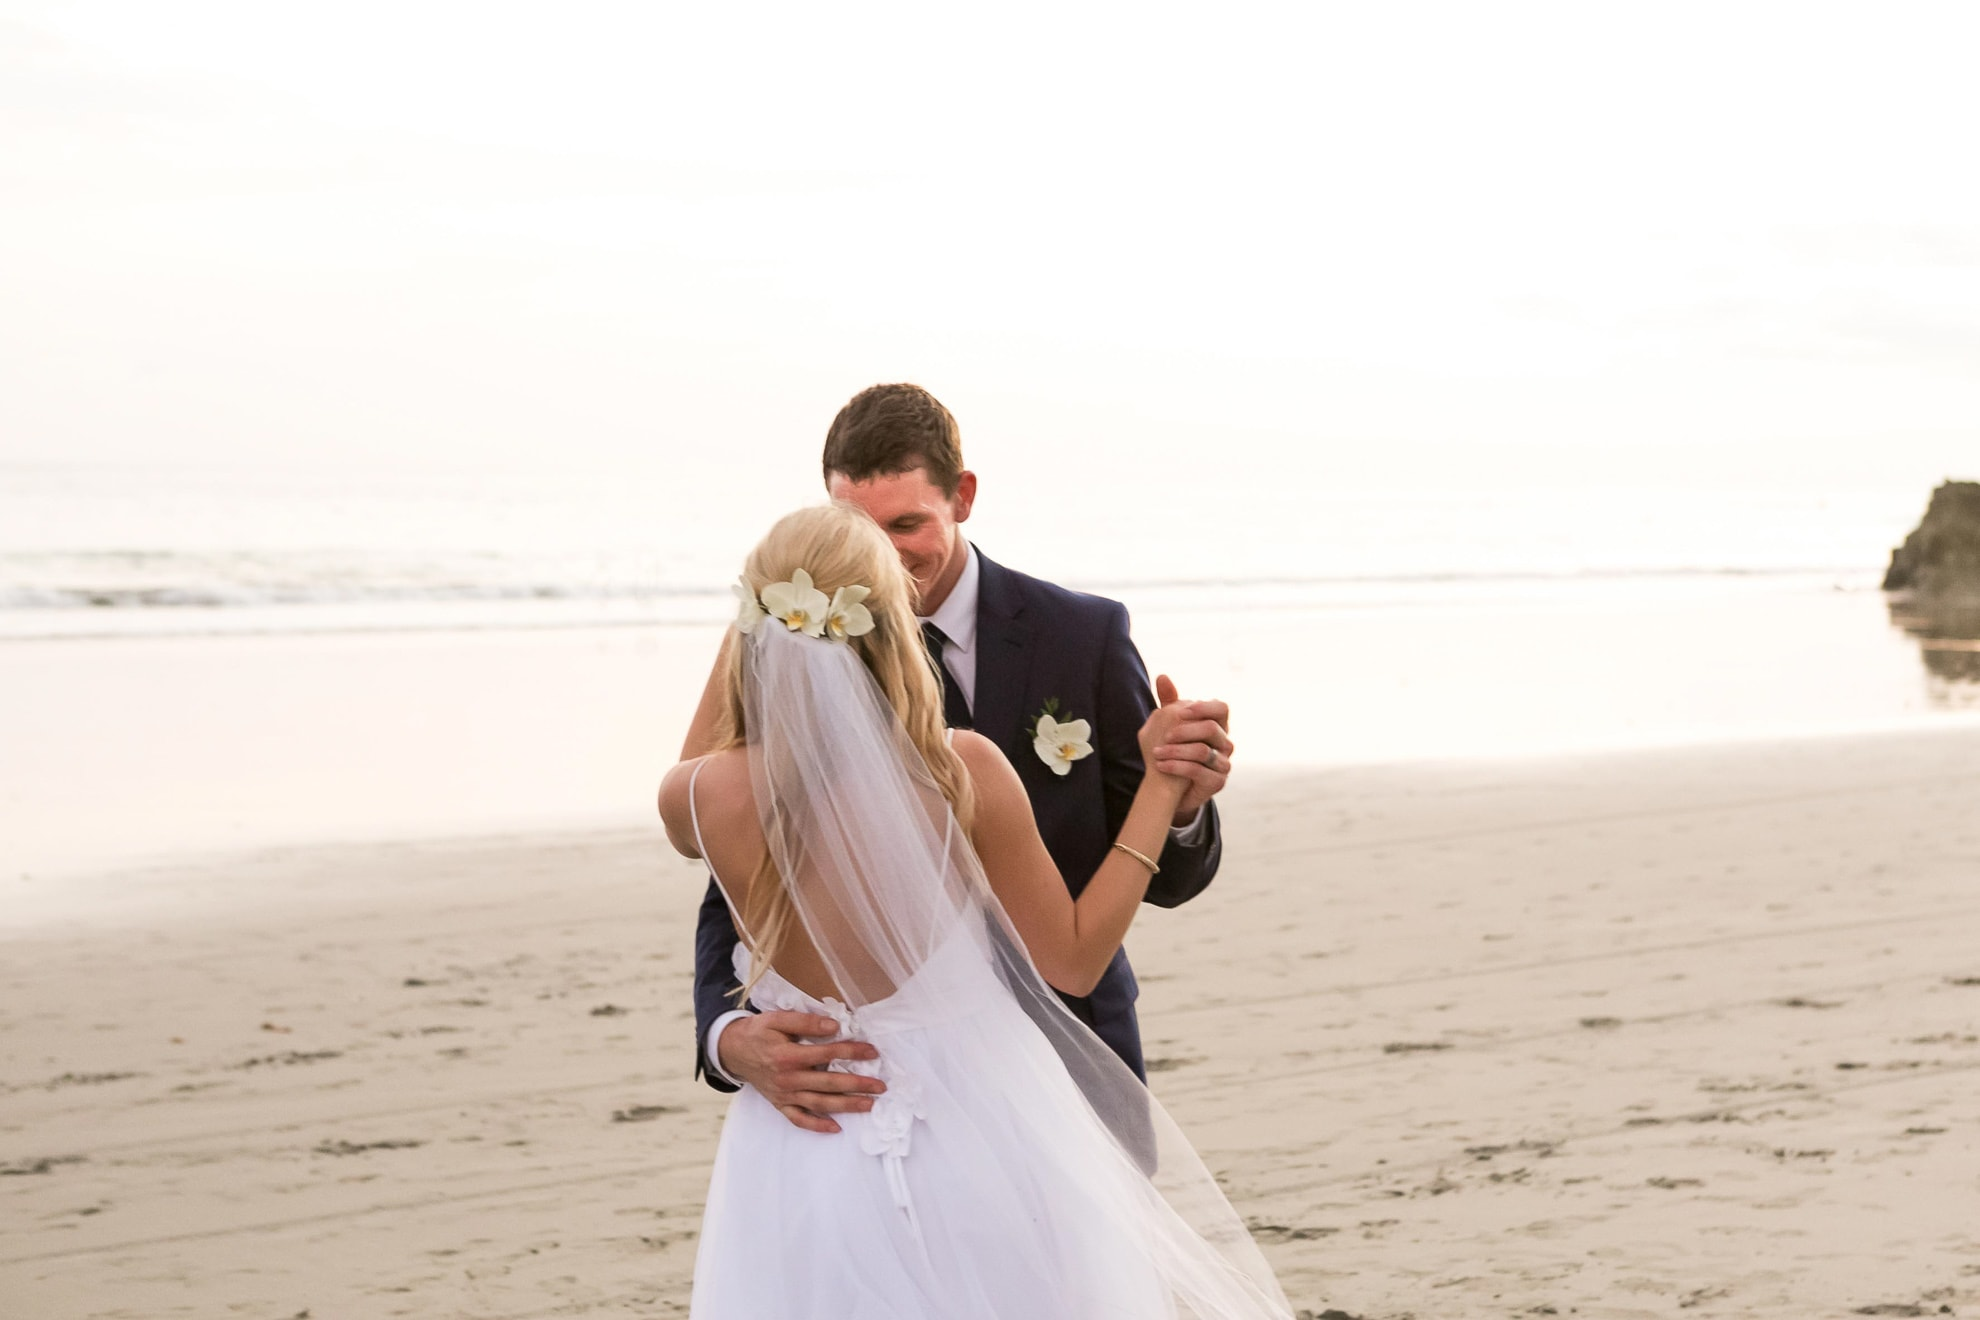 Bride and groom have first dance at beach.